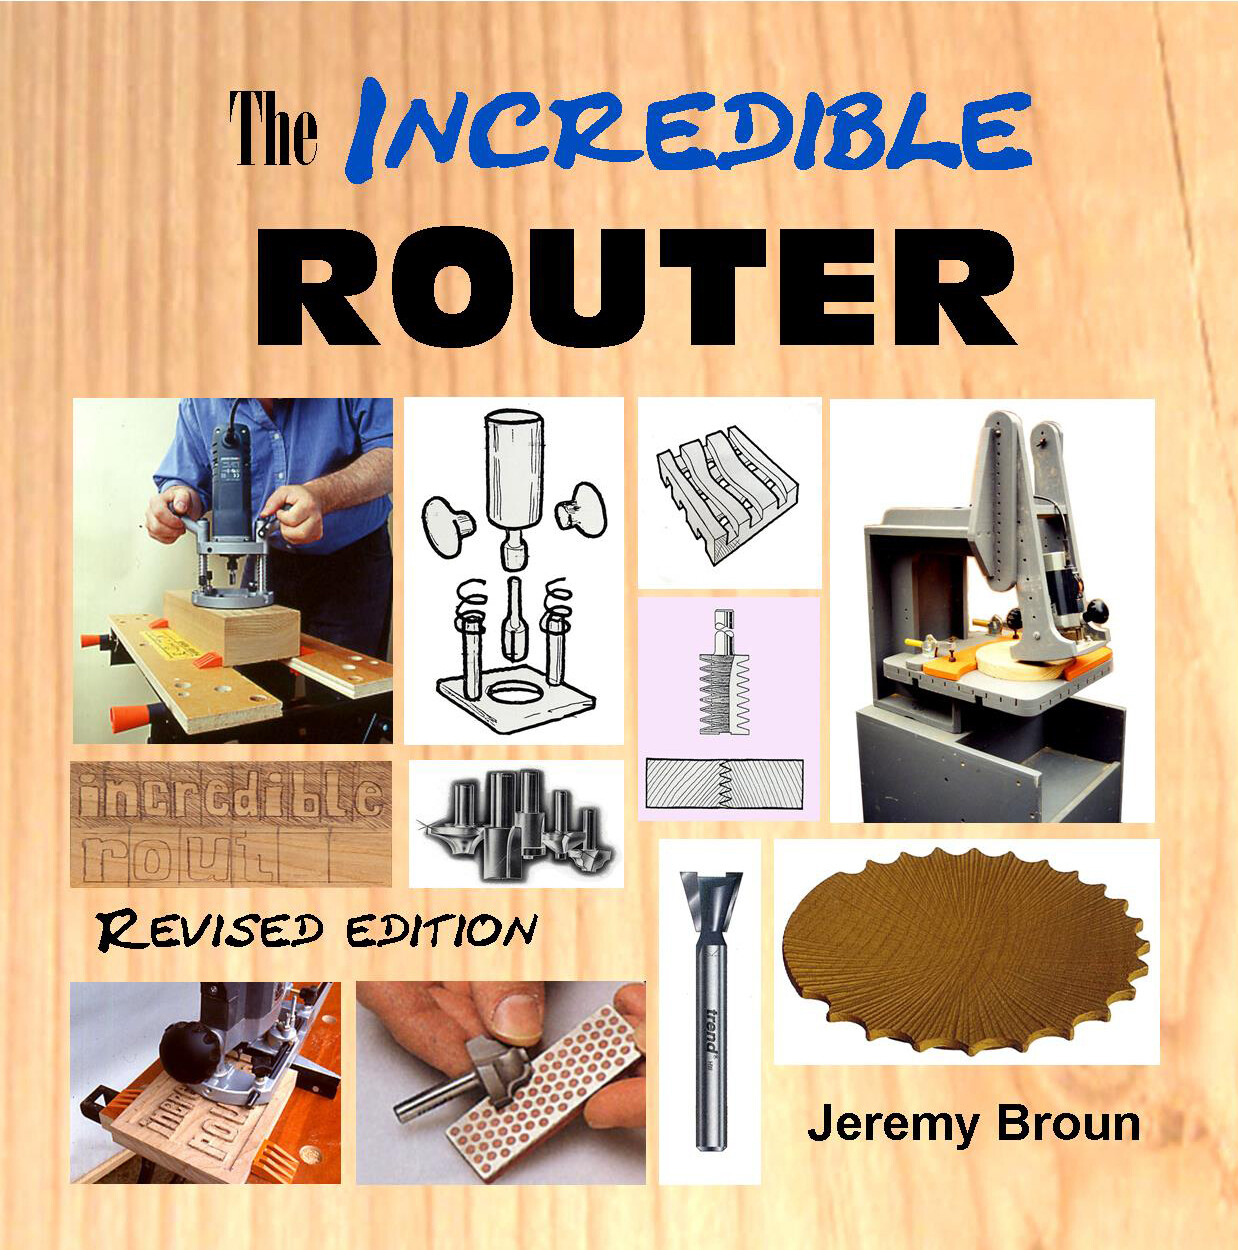 NEW! The Incredible Router hardback book - Revised Edition 2020 + online 'Getting started' video + The JKB Universal Routing Table project PDF download.